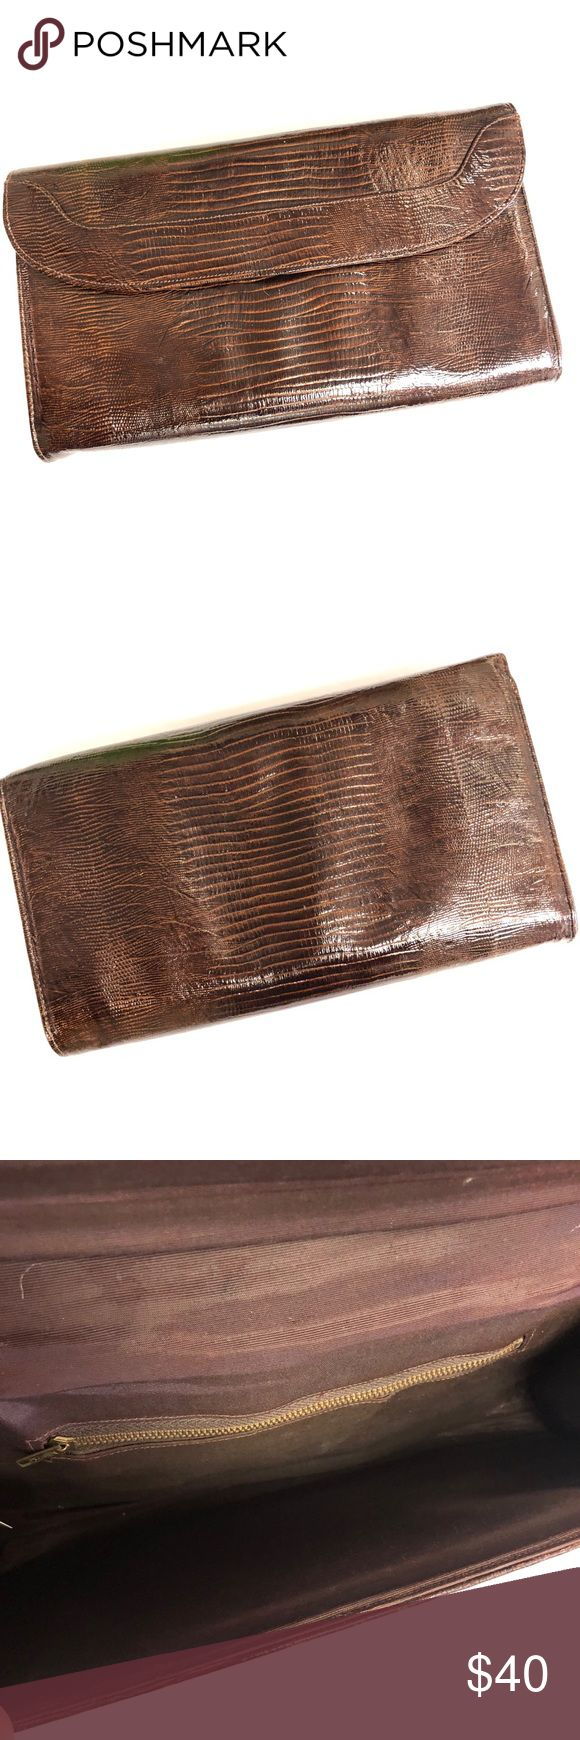 """Vintage  Snake Skin Clutch Beautiful dark brown clutch with button closure and inside pocket. 12"""" x 7.5"""" x 1.5"""" Bags Clutches & Wristlets"""